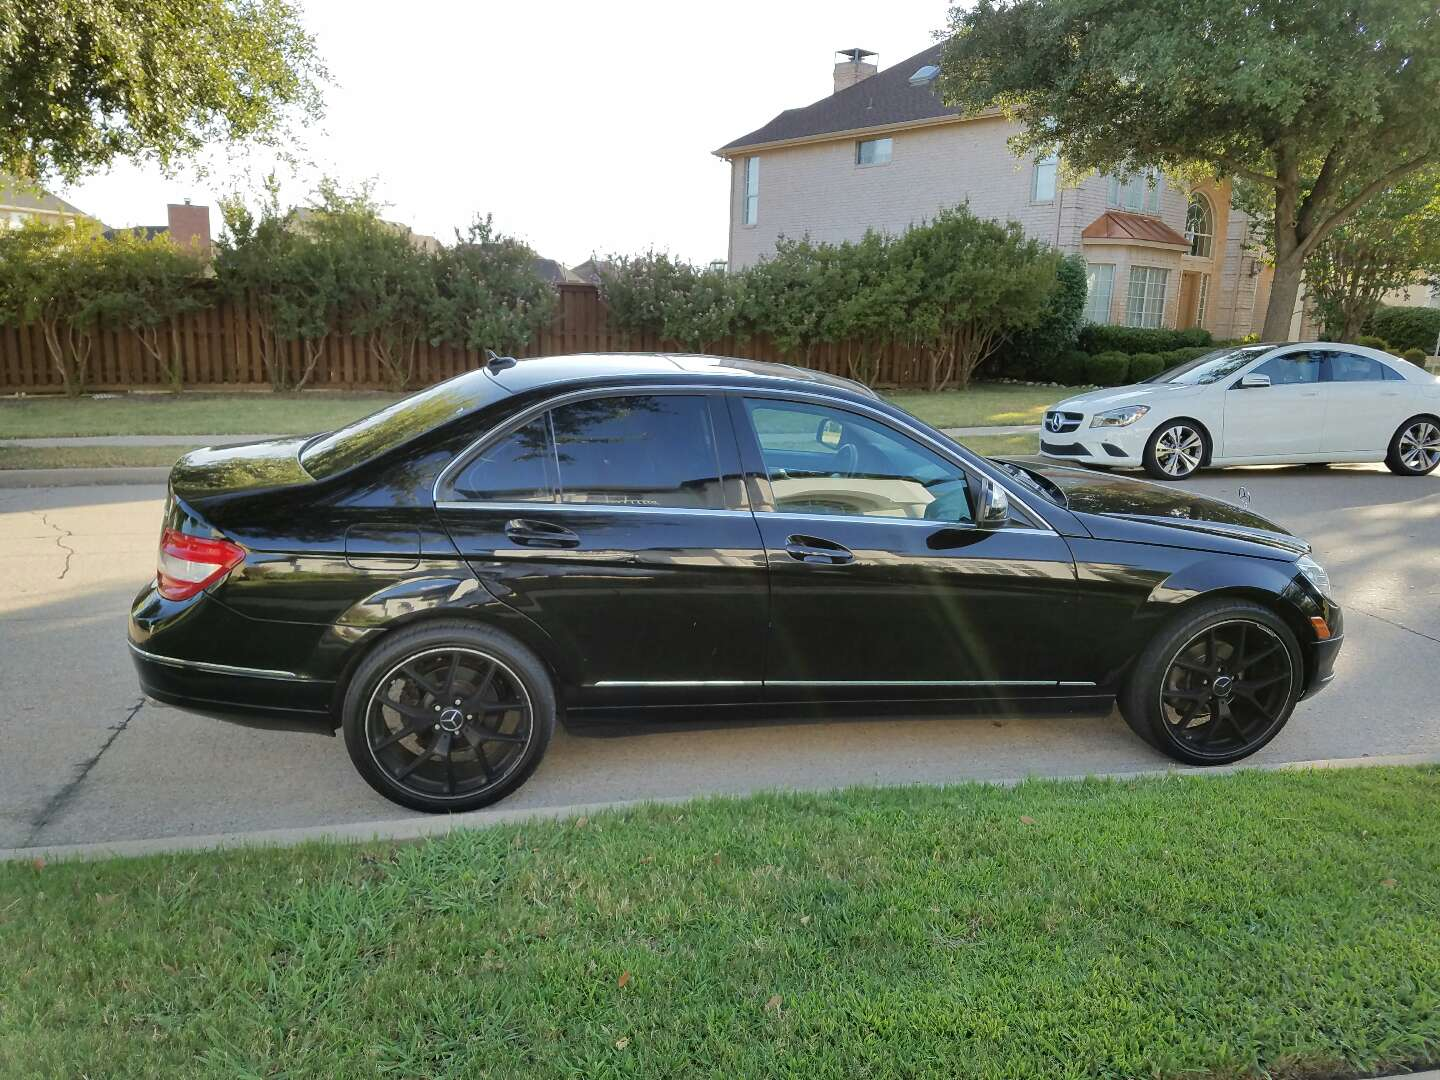 2009 mercedes c300 4matic for sale in dallas tx 5miles for 2009 mercedes benz c300 for sale